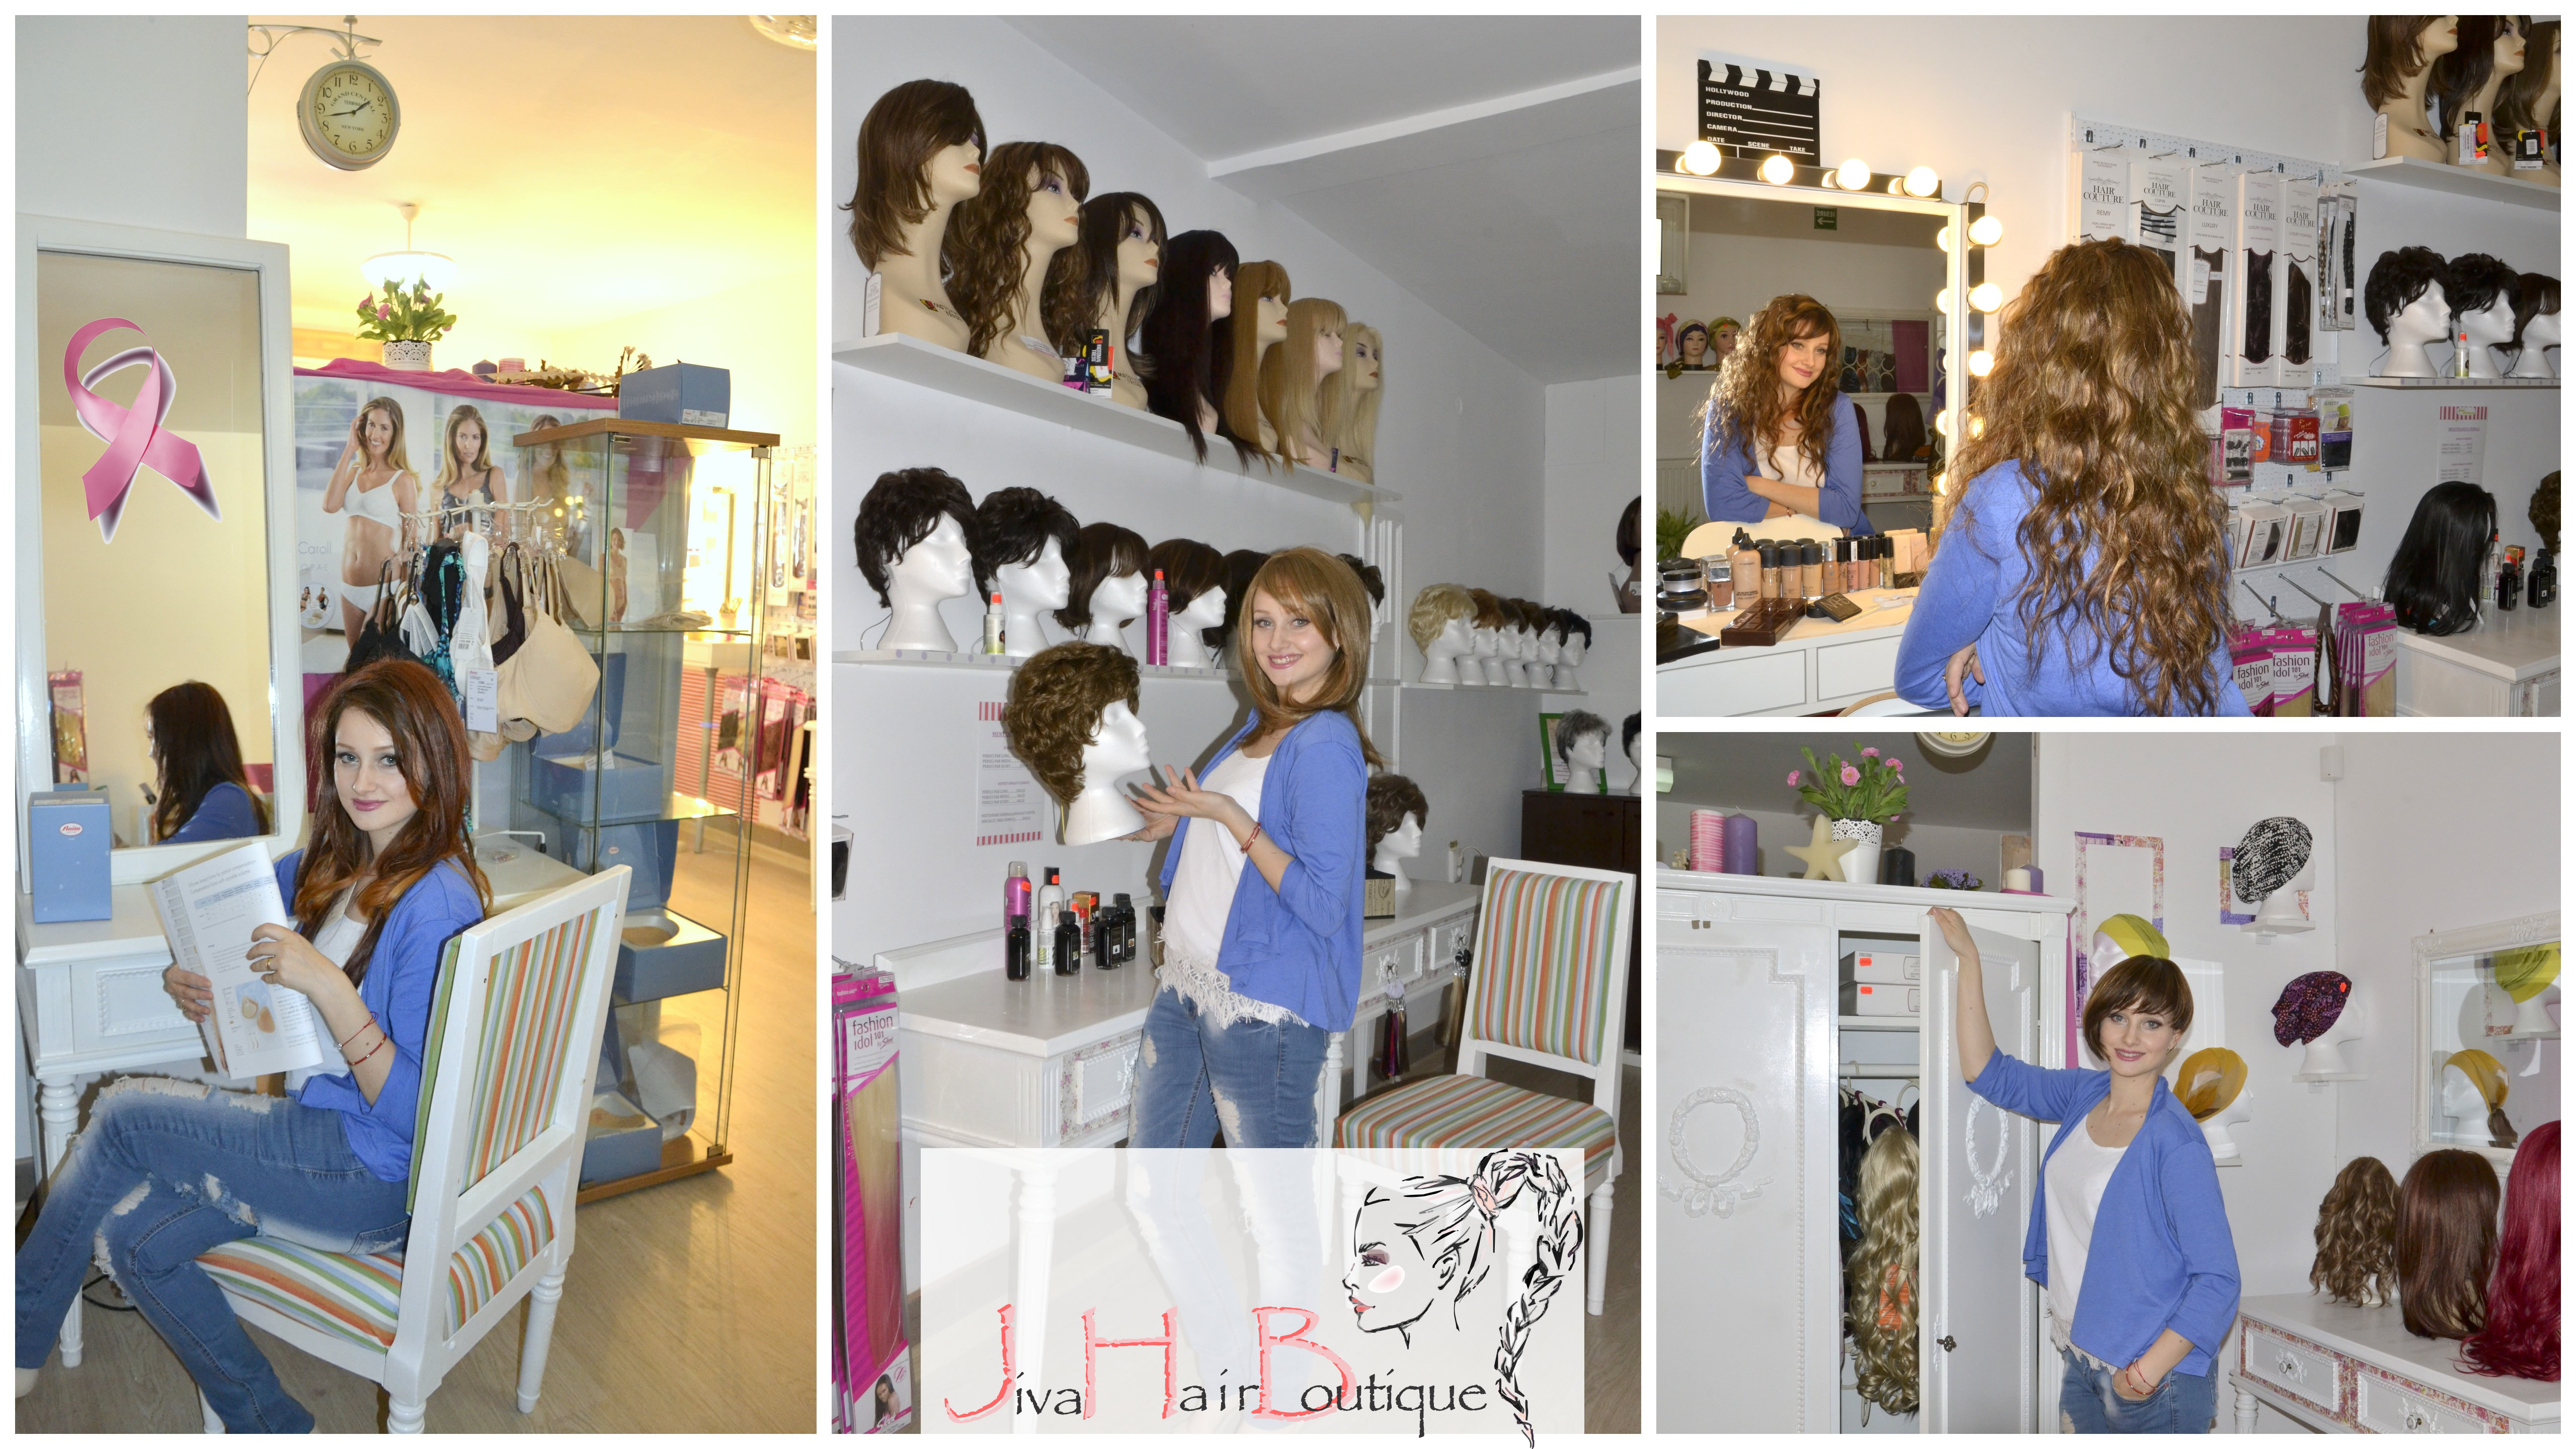 Jiva Hair Boutique